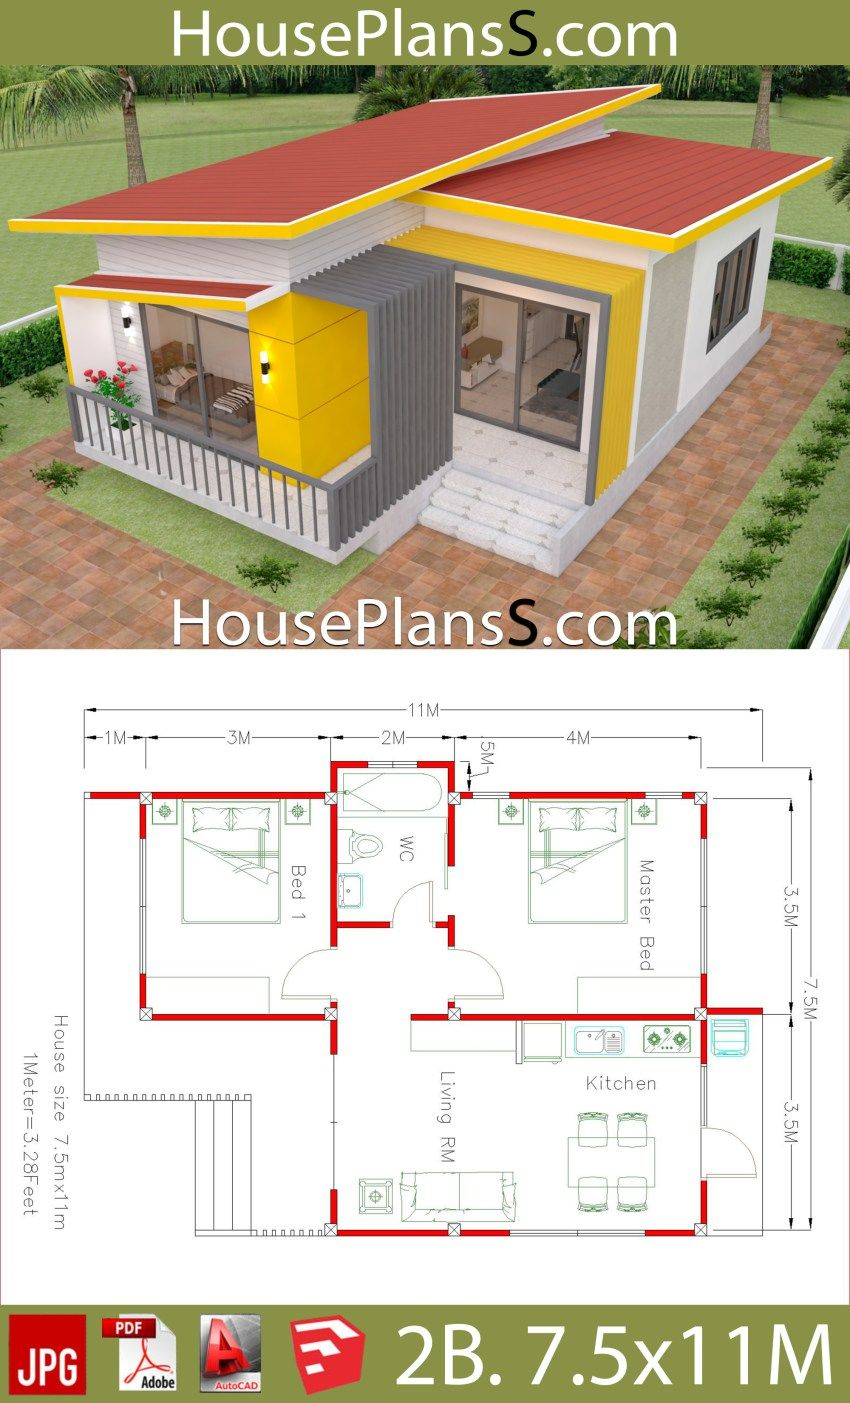 House Plans 7 5x11 With 2 Bedrooms Full Plans Little House Plans Small House Design Plans Sims House Plans